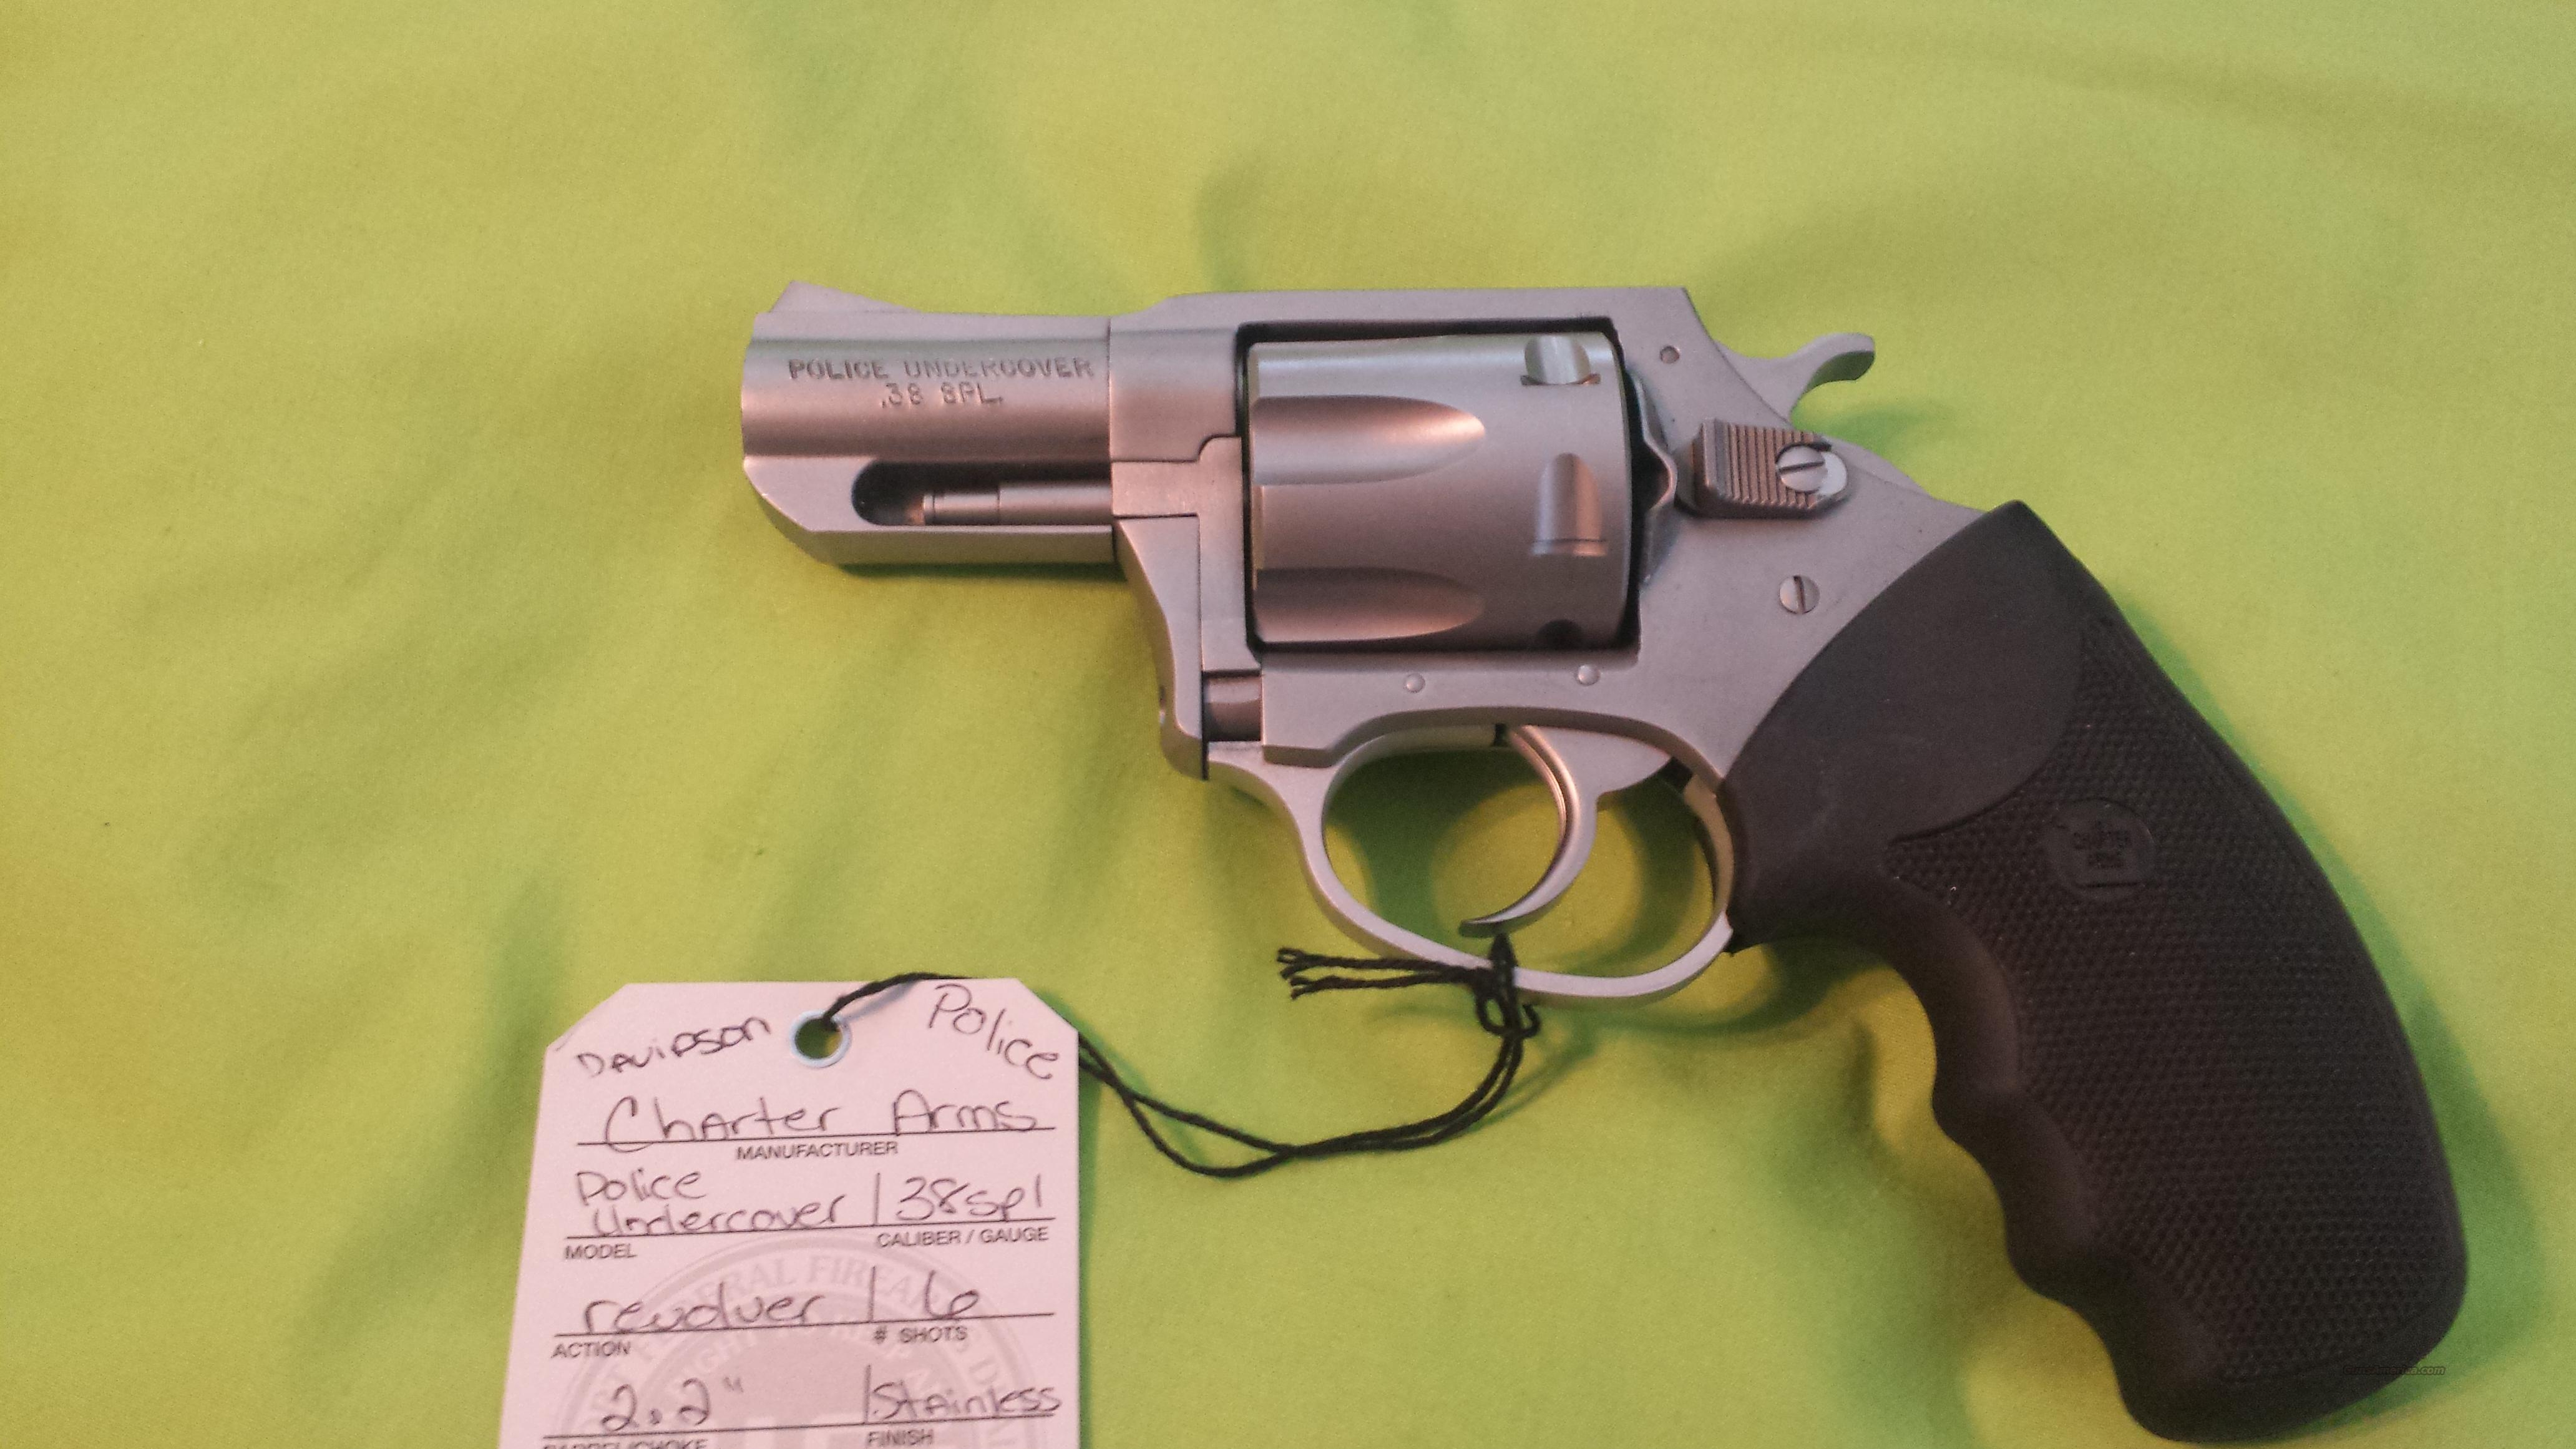 CHARTER ARMS POLICE UNDERCOVER 38SP REVOLVER 6RD  Guns > Pistols > Charter Arms Revolvers